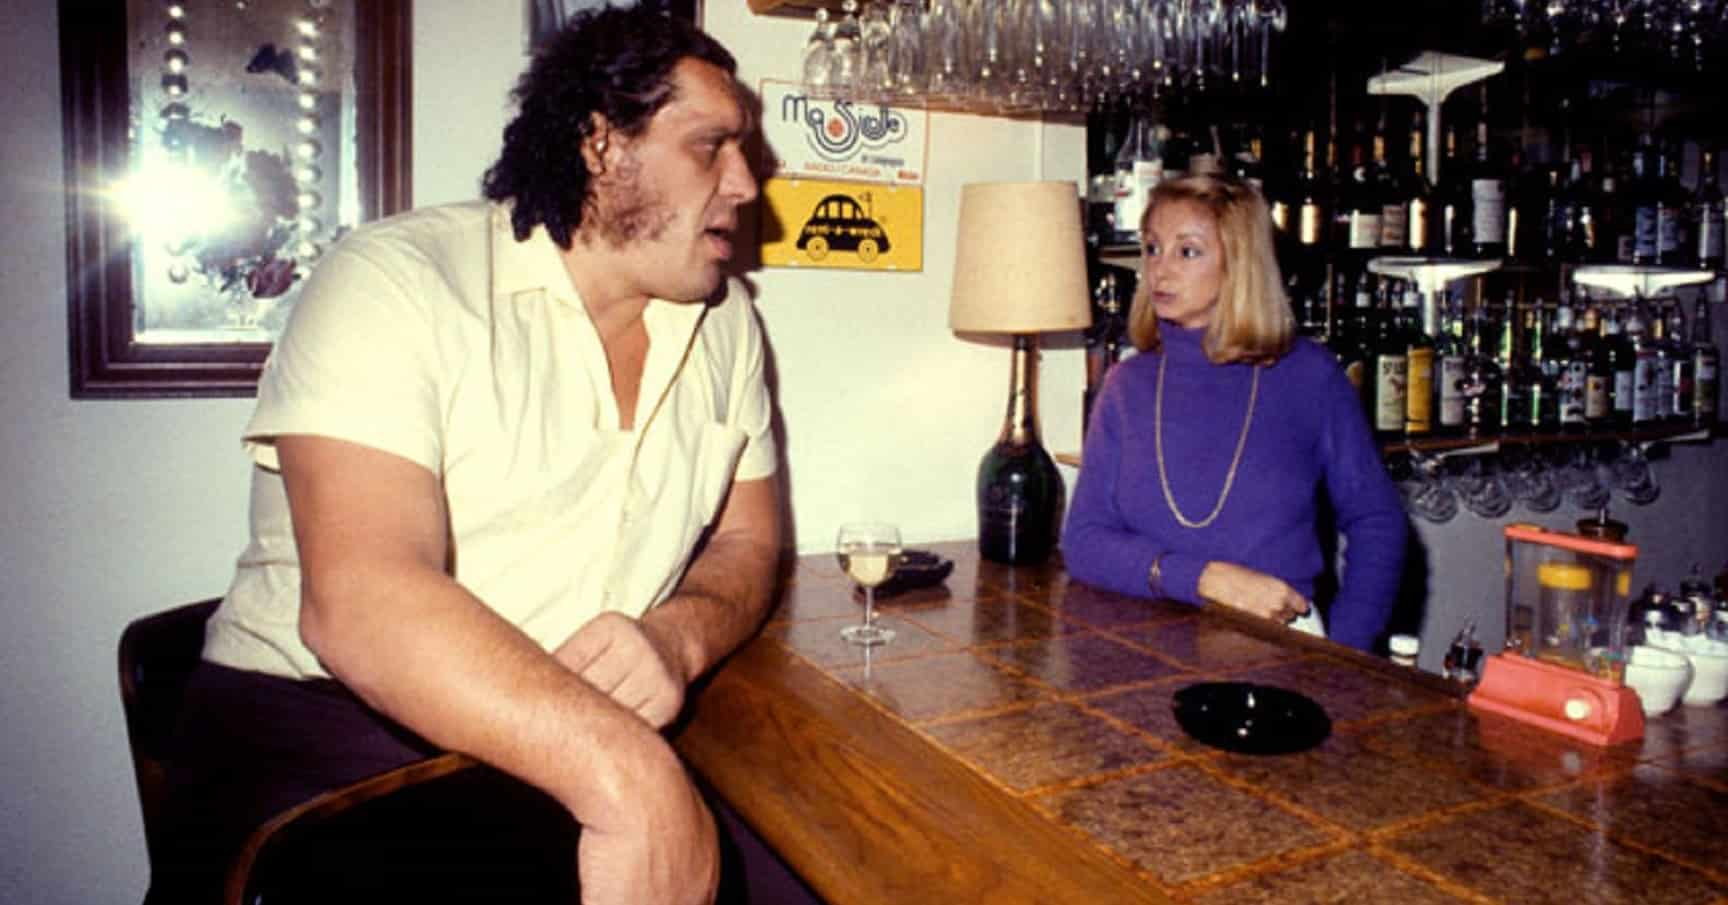 Andre the Giant sitting at a bar with a female bartender